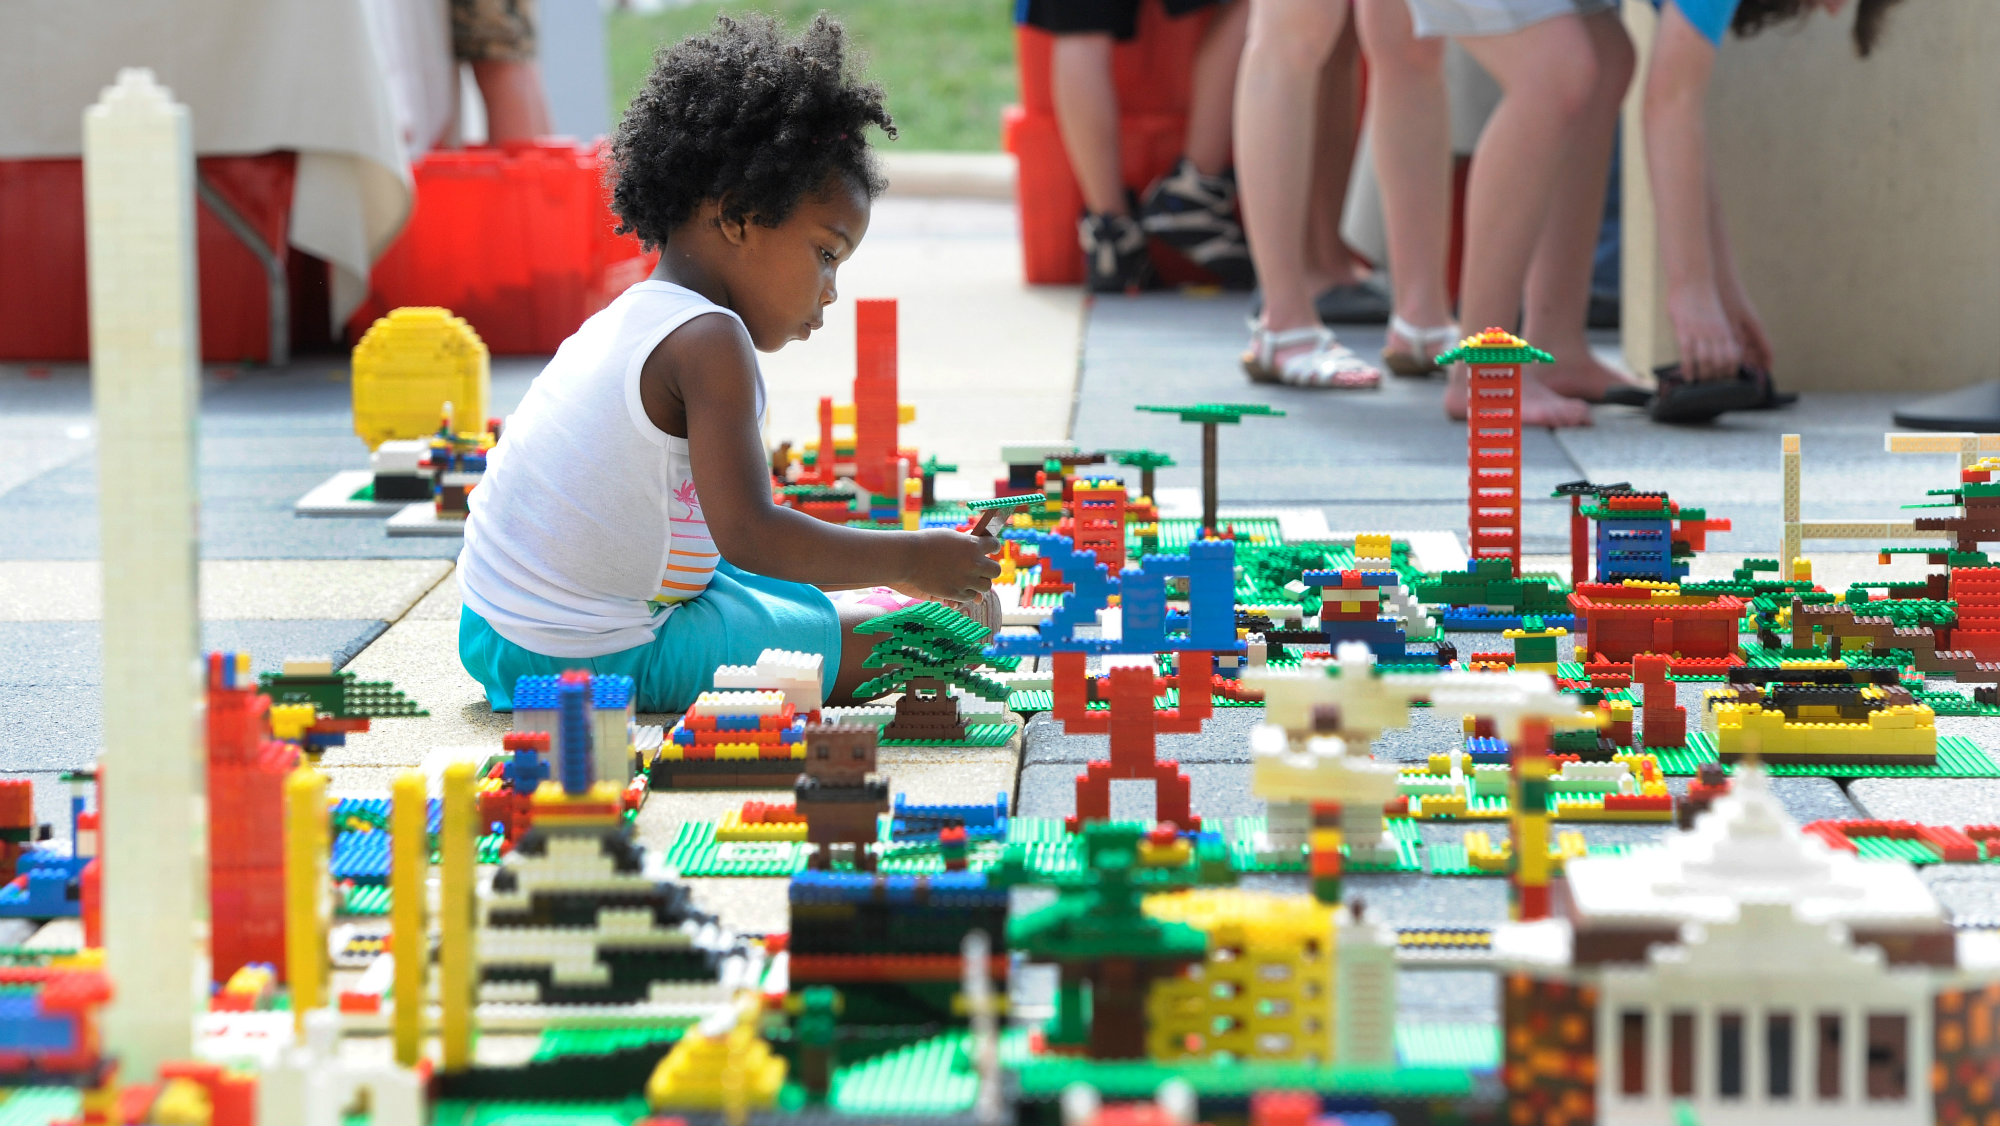 LEGO Maker Glo Banks, of Washington, helps build a 30-by-50